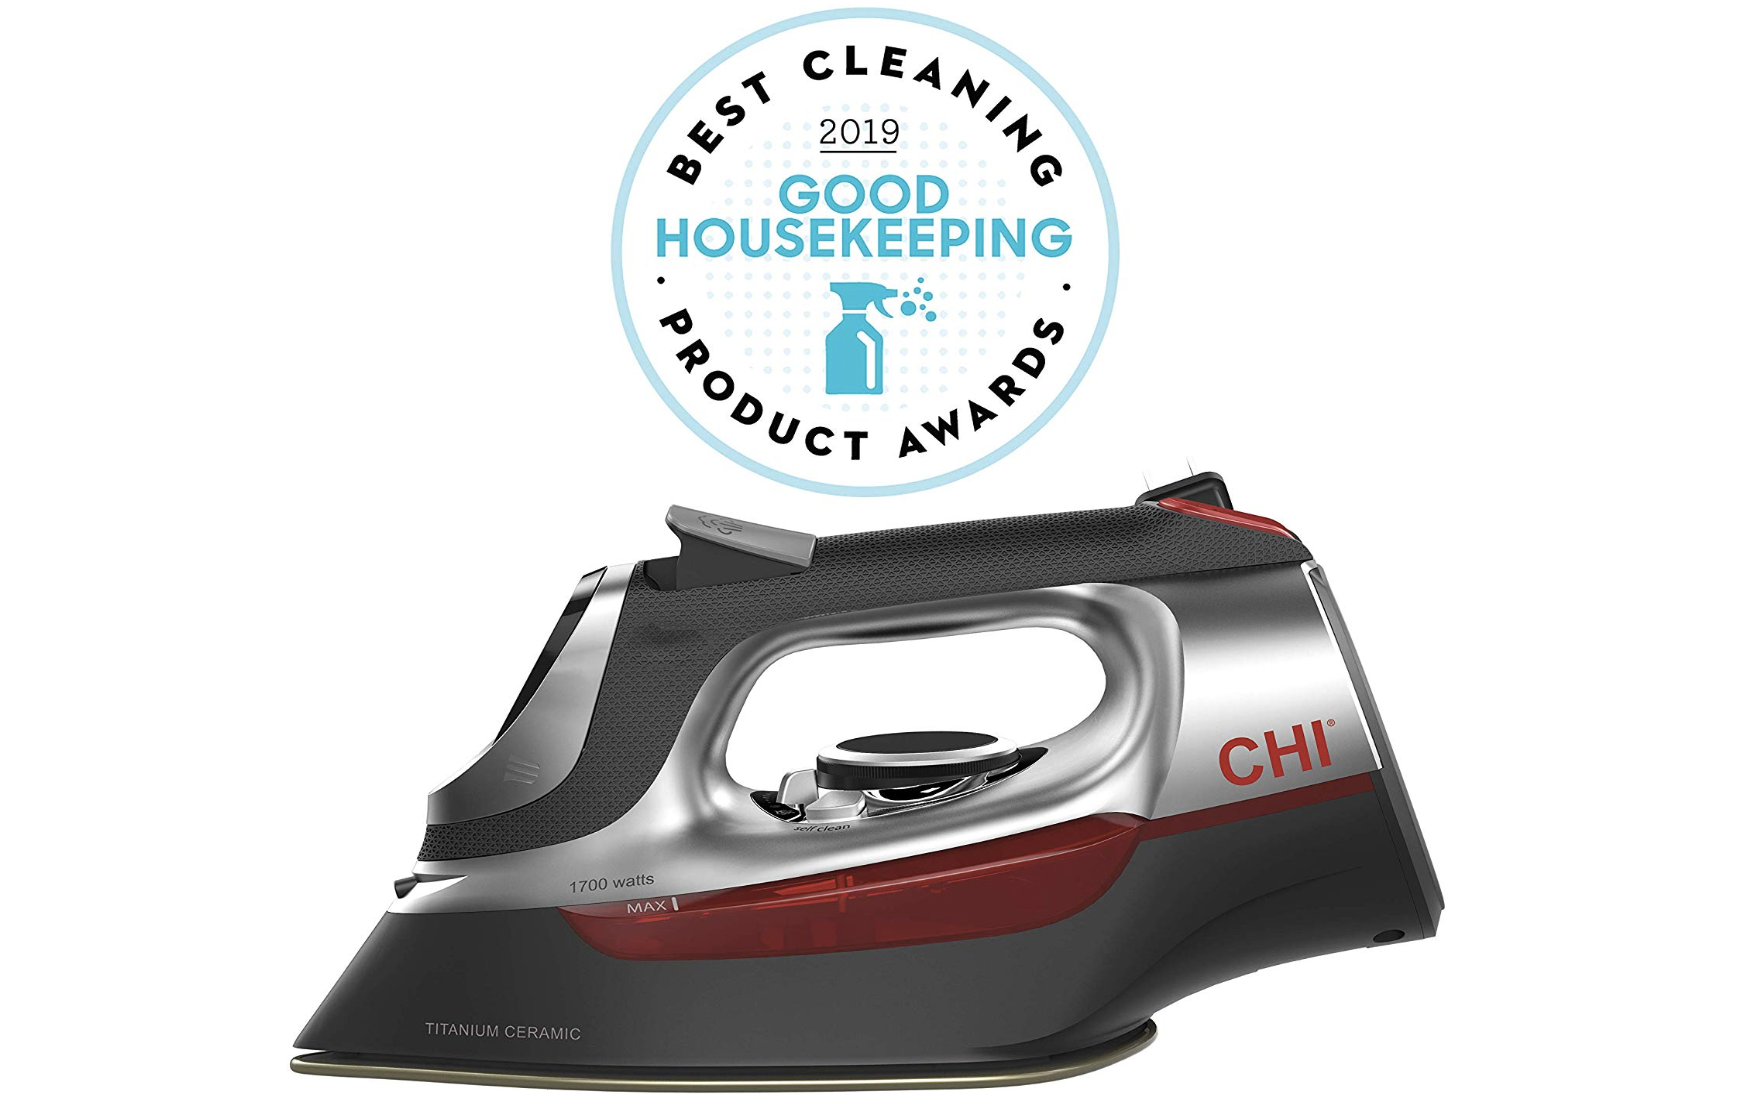 Top 10 Best Steam Irons of 2019 Review